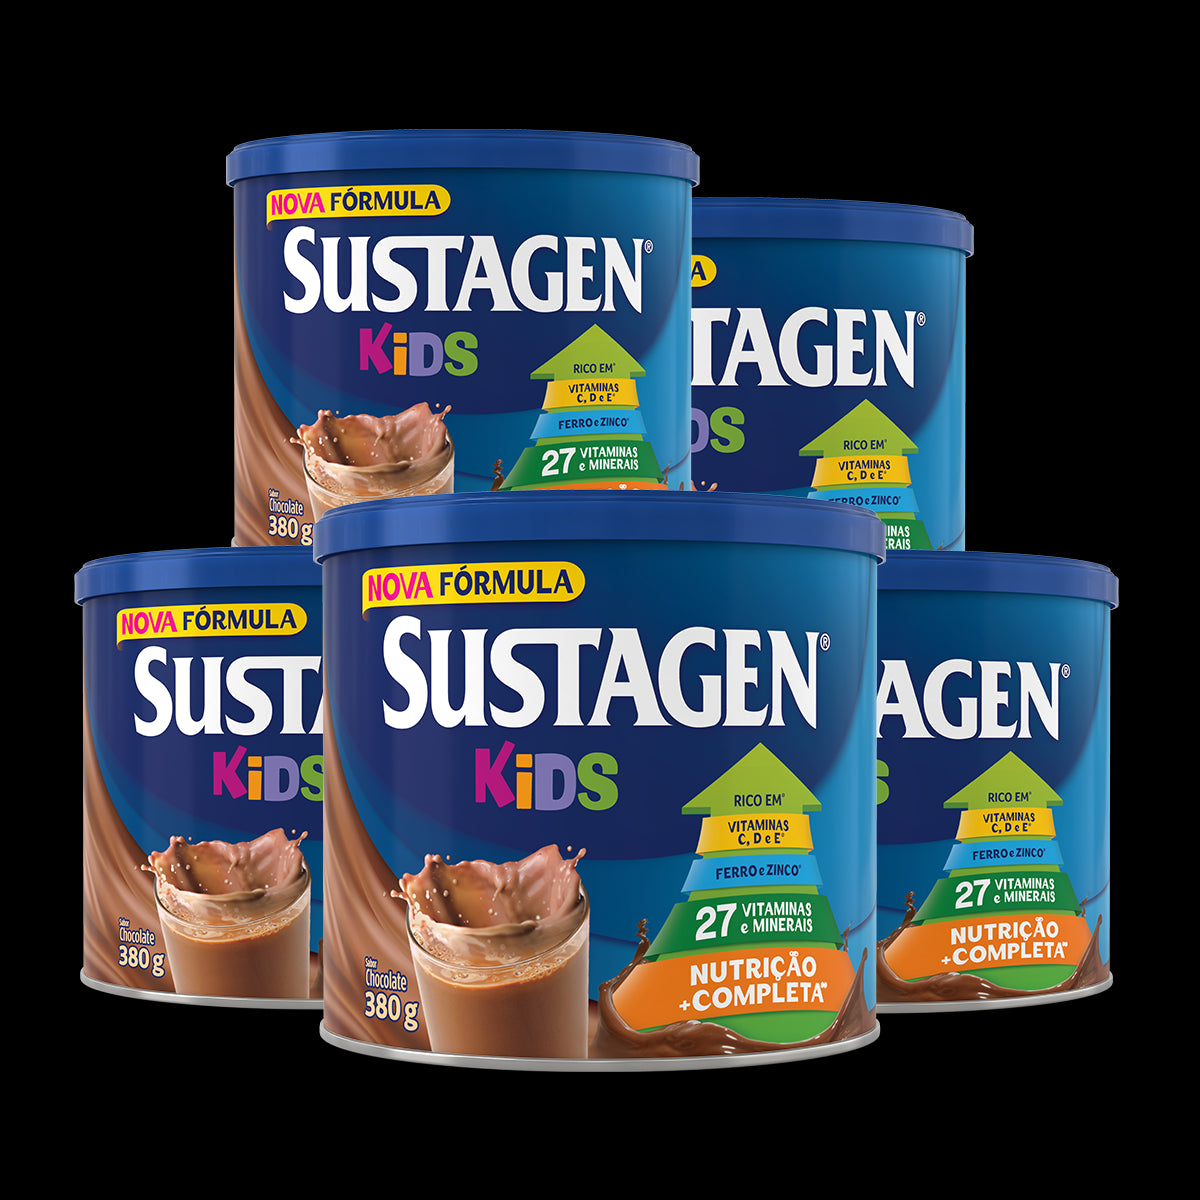 Kit Leve 5 Pague 4 - Complemento Alimentar Sustagen Kids Sabor Chocolate - Lata 5x380g